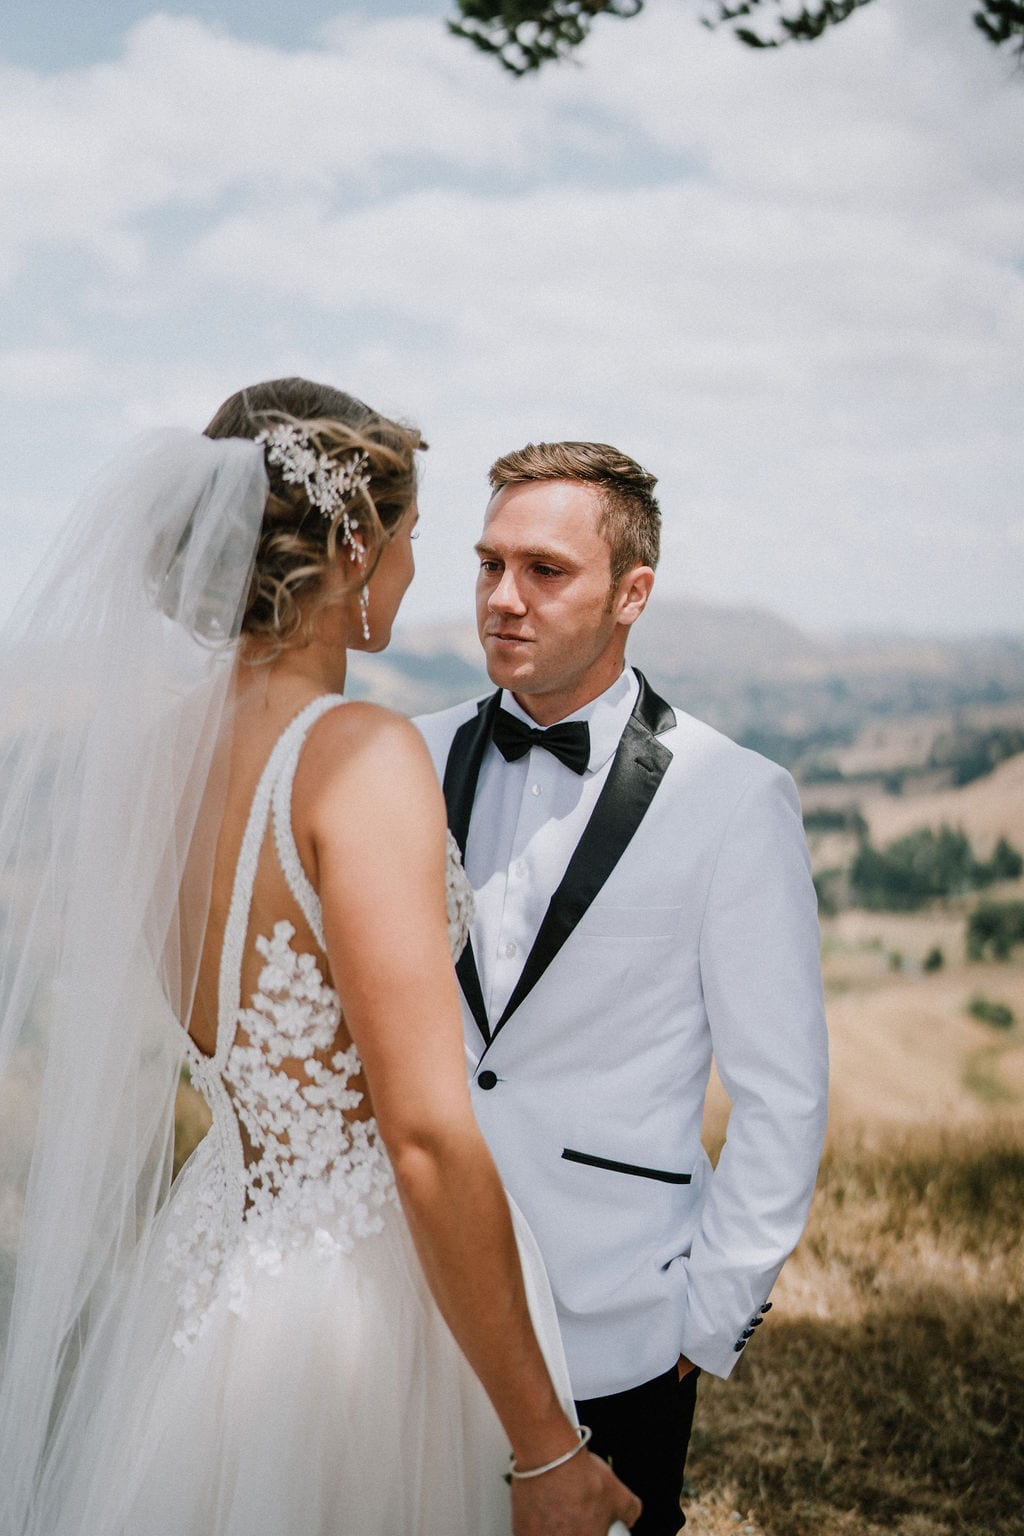 Vinka Design Features Real Weddings - bride in custom version of the Isabelle gown from our Heart of Havana collection. A fitted nude based bodice with delicate 3D beaded flowers with hand beaded trim and a skirt of dreamy tulle. Bride and groom face to face on panoramic mountain